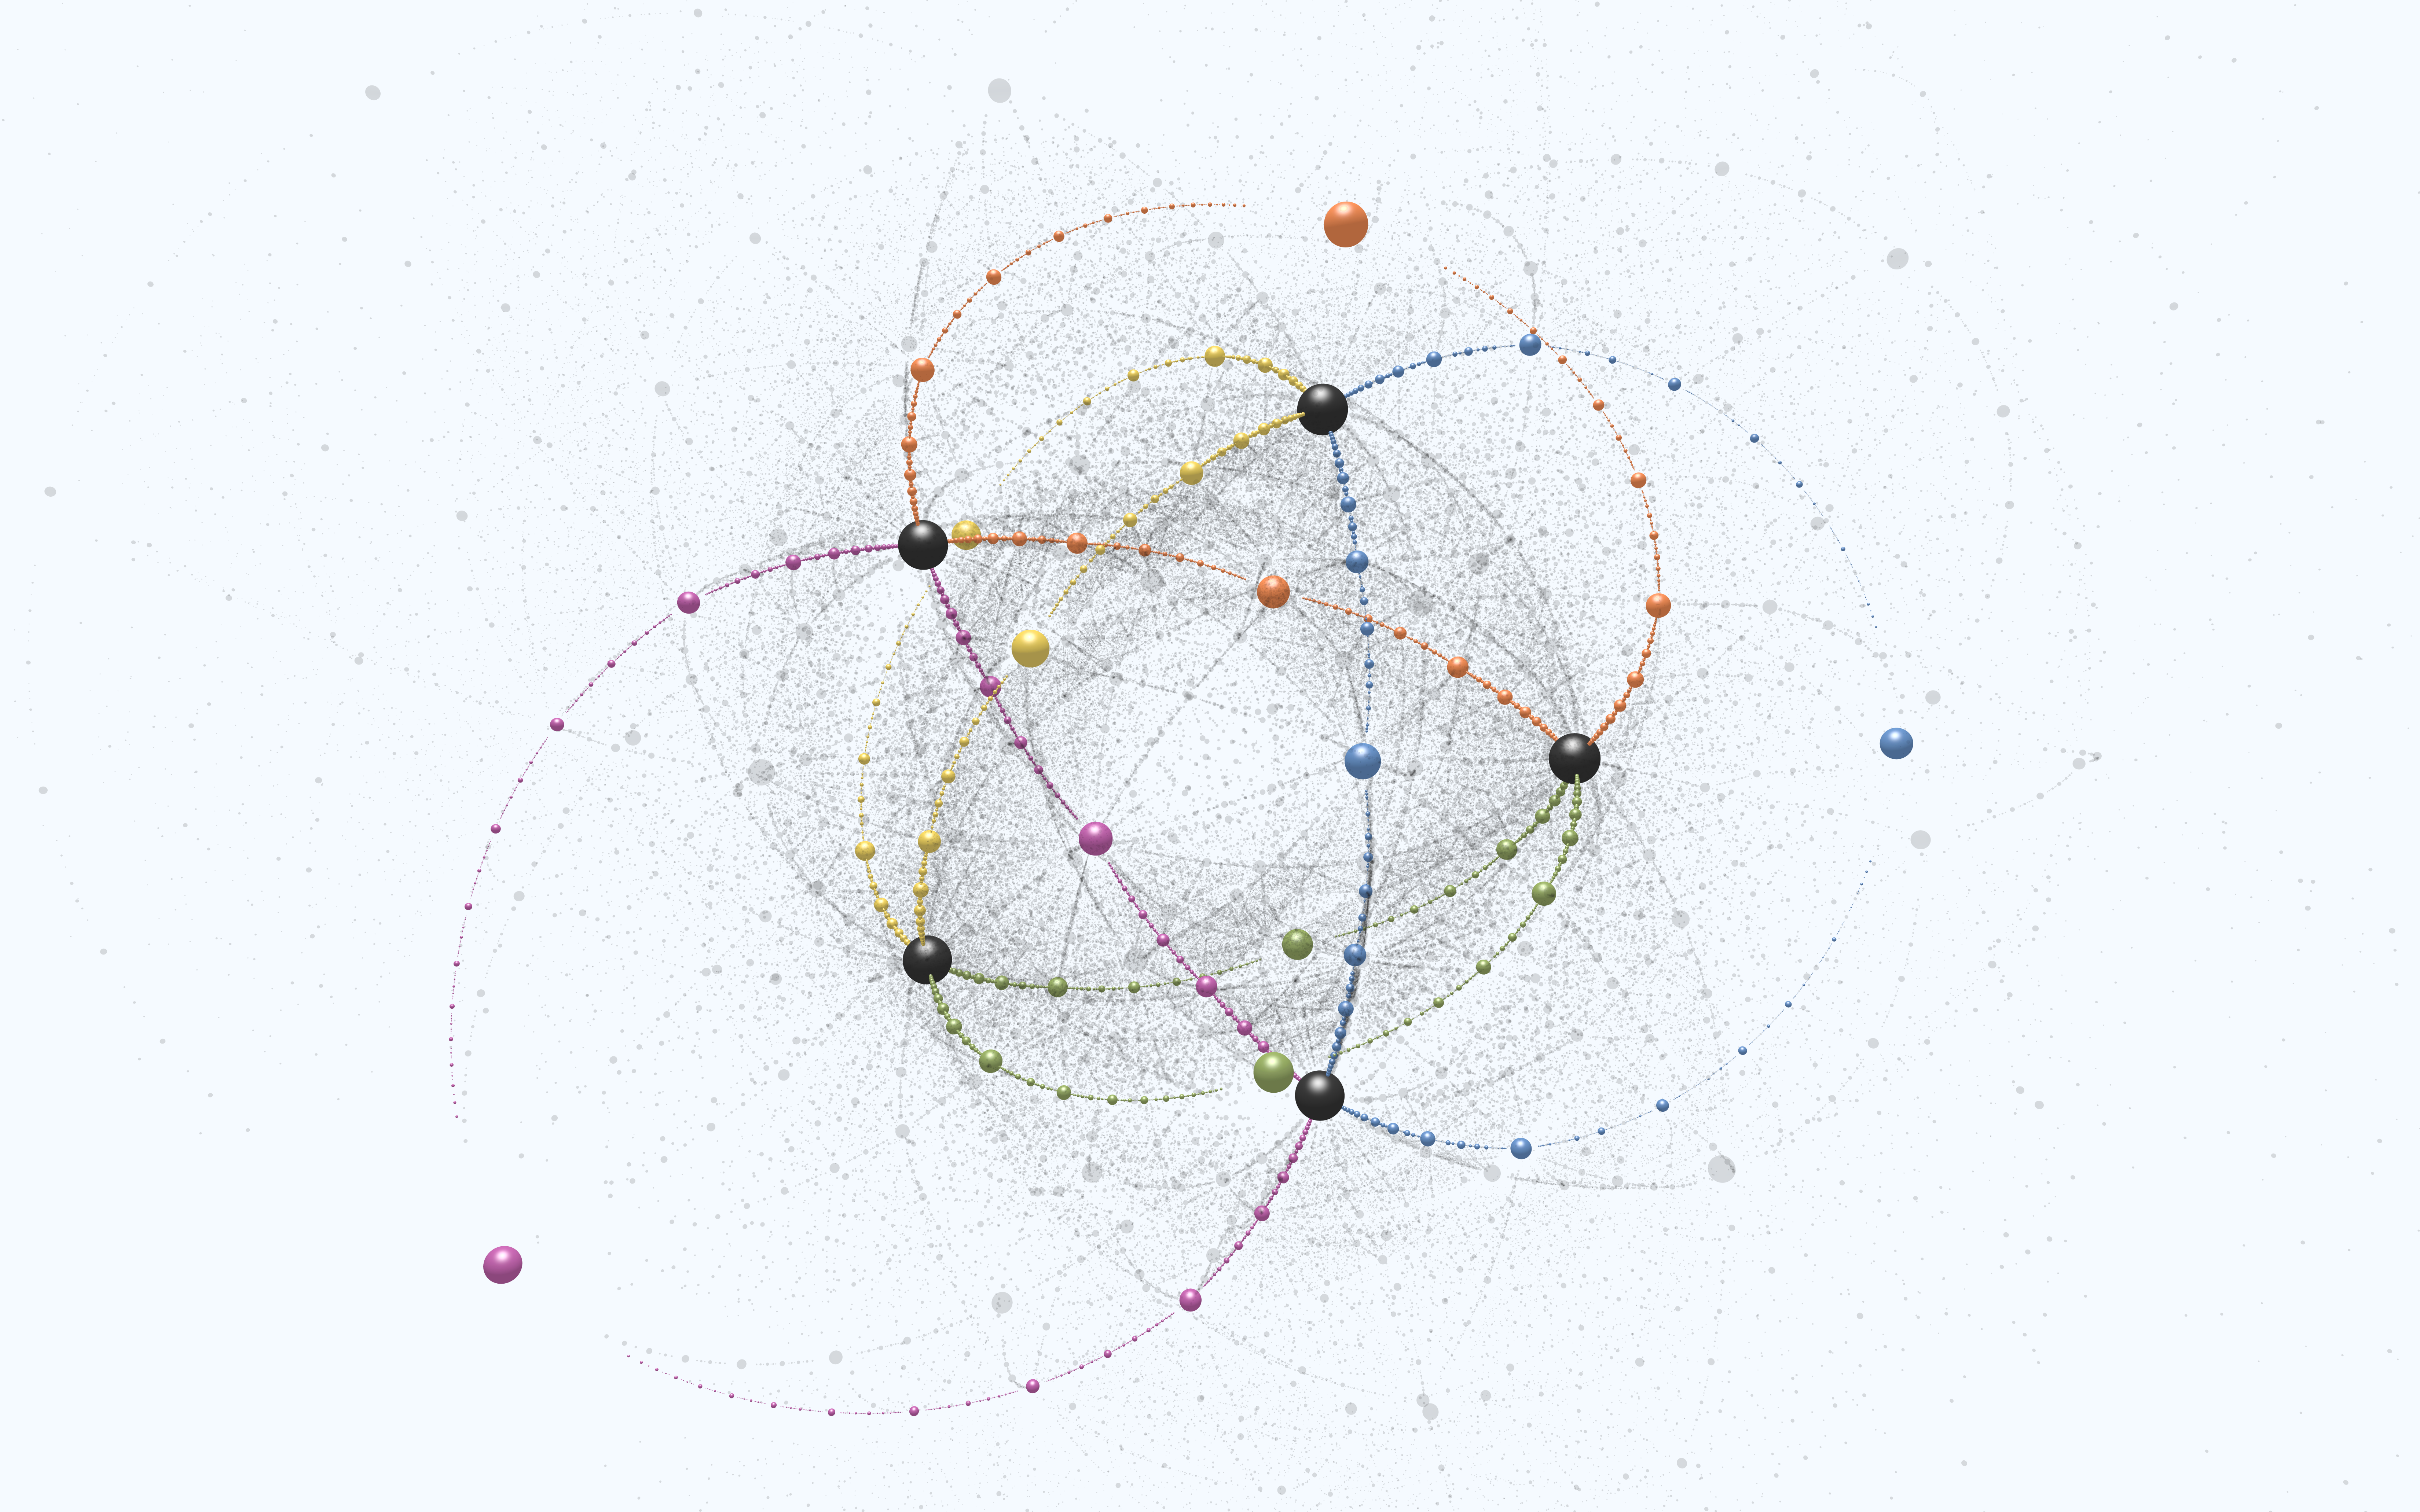 The PML Visualization Project